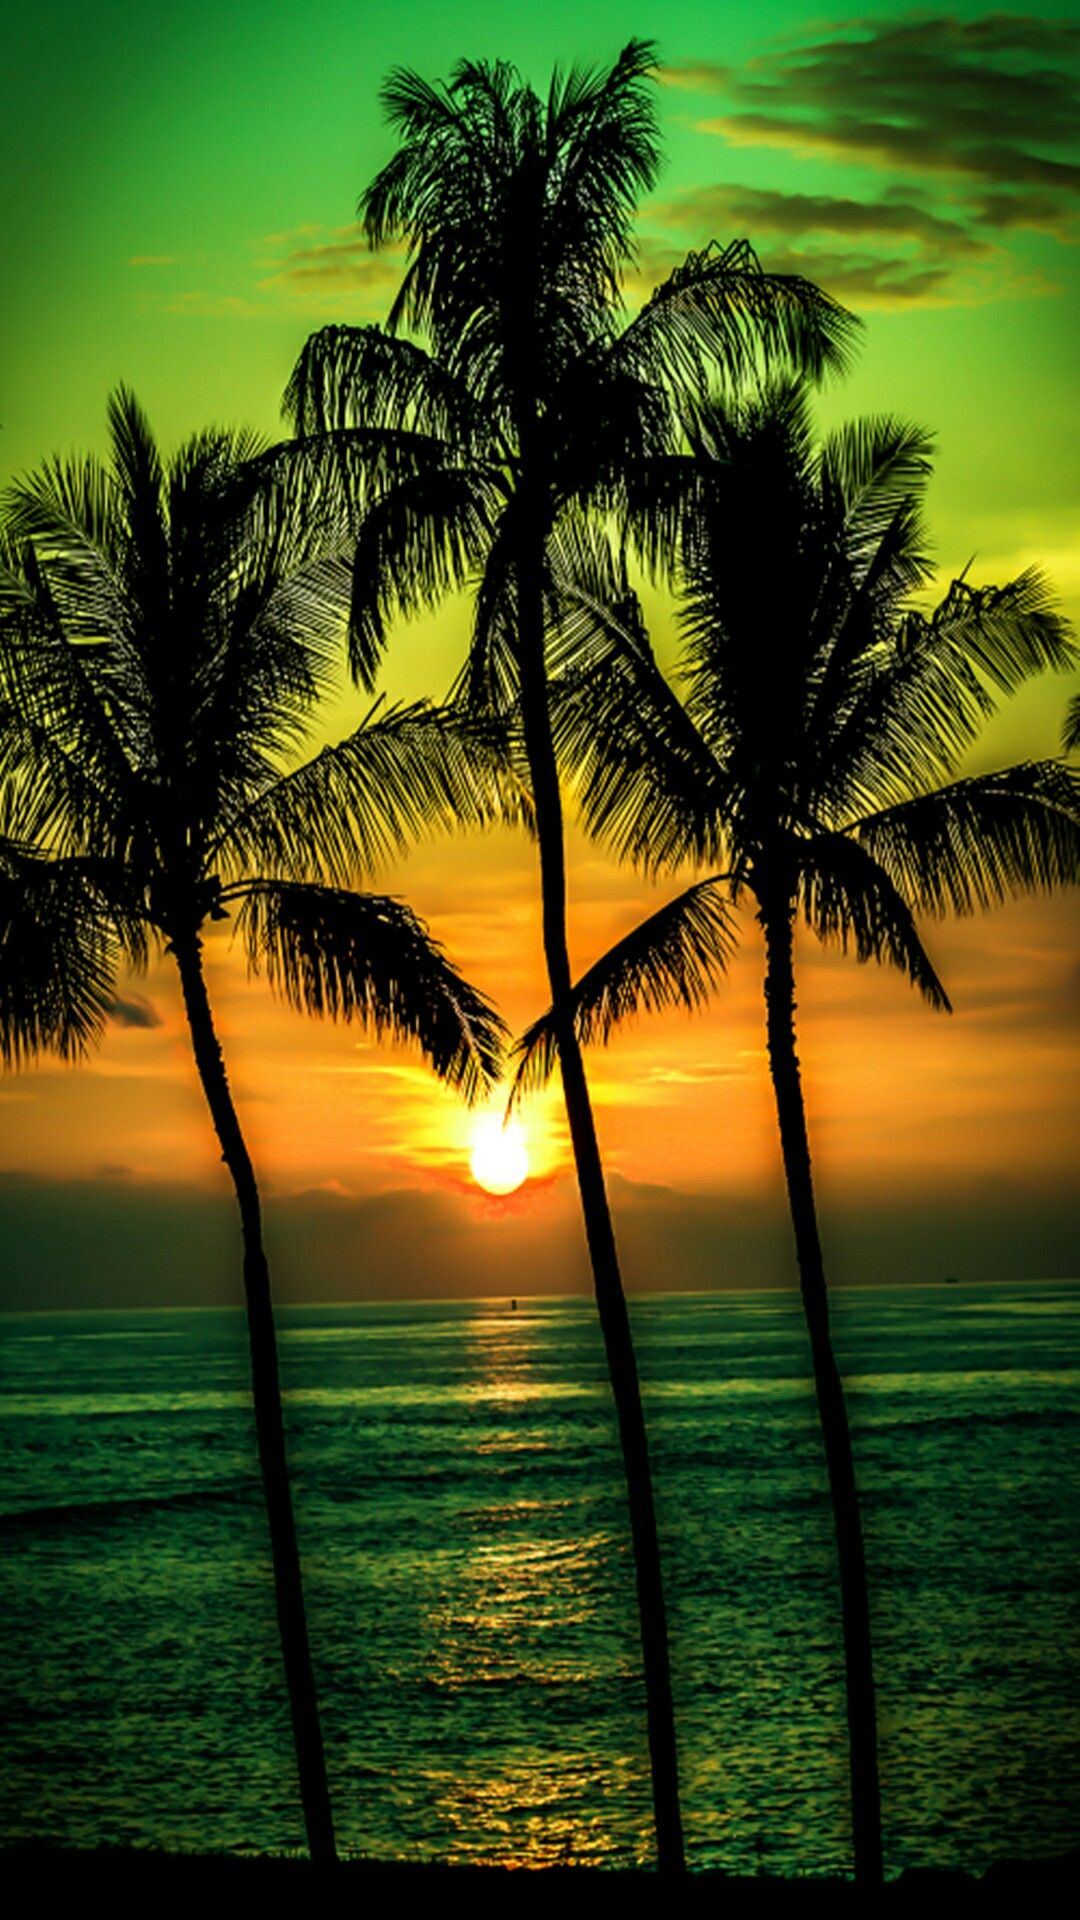 Palm tree sunset wallpaper phone wallpaper Pinterest